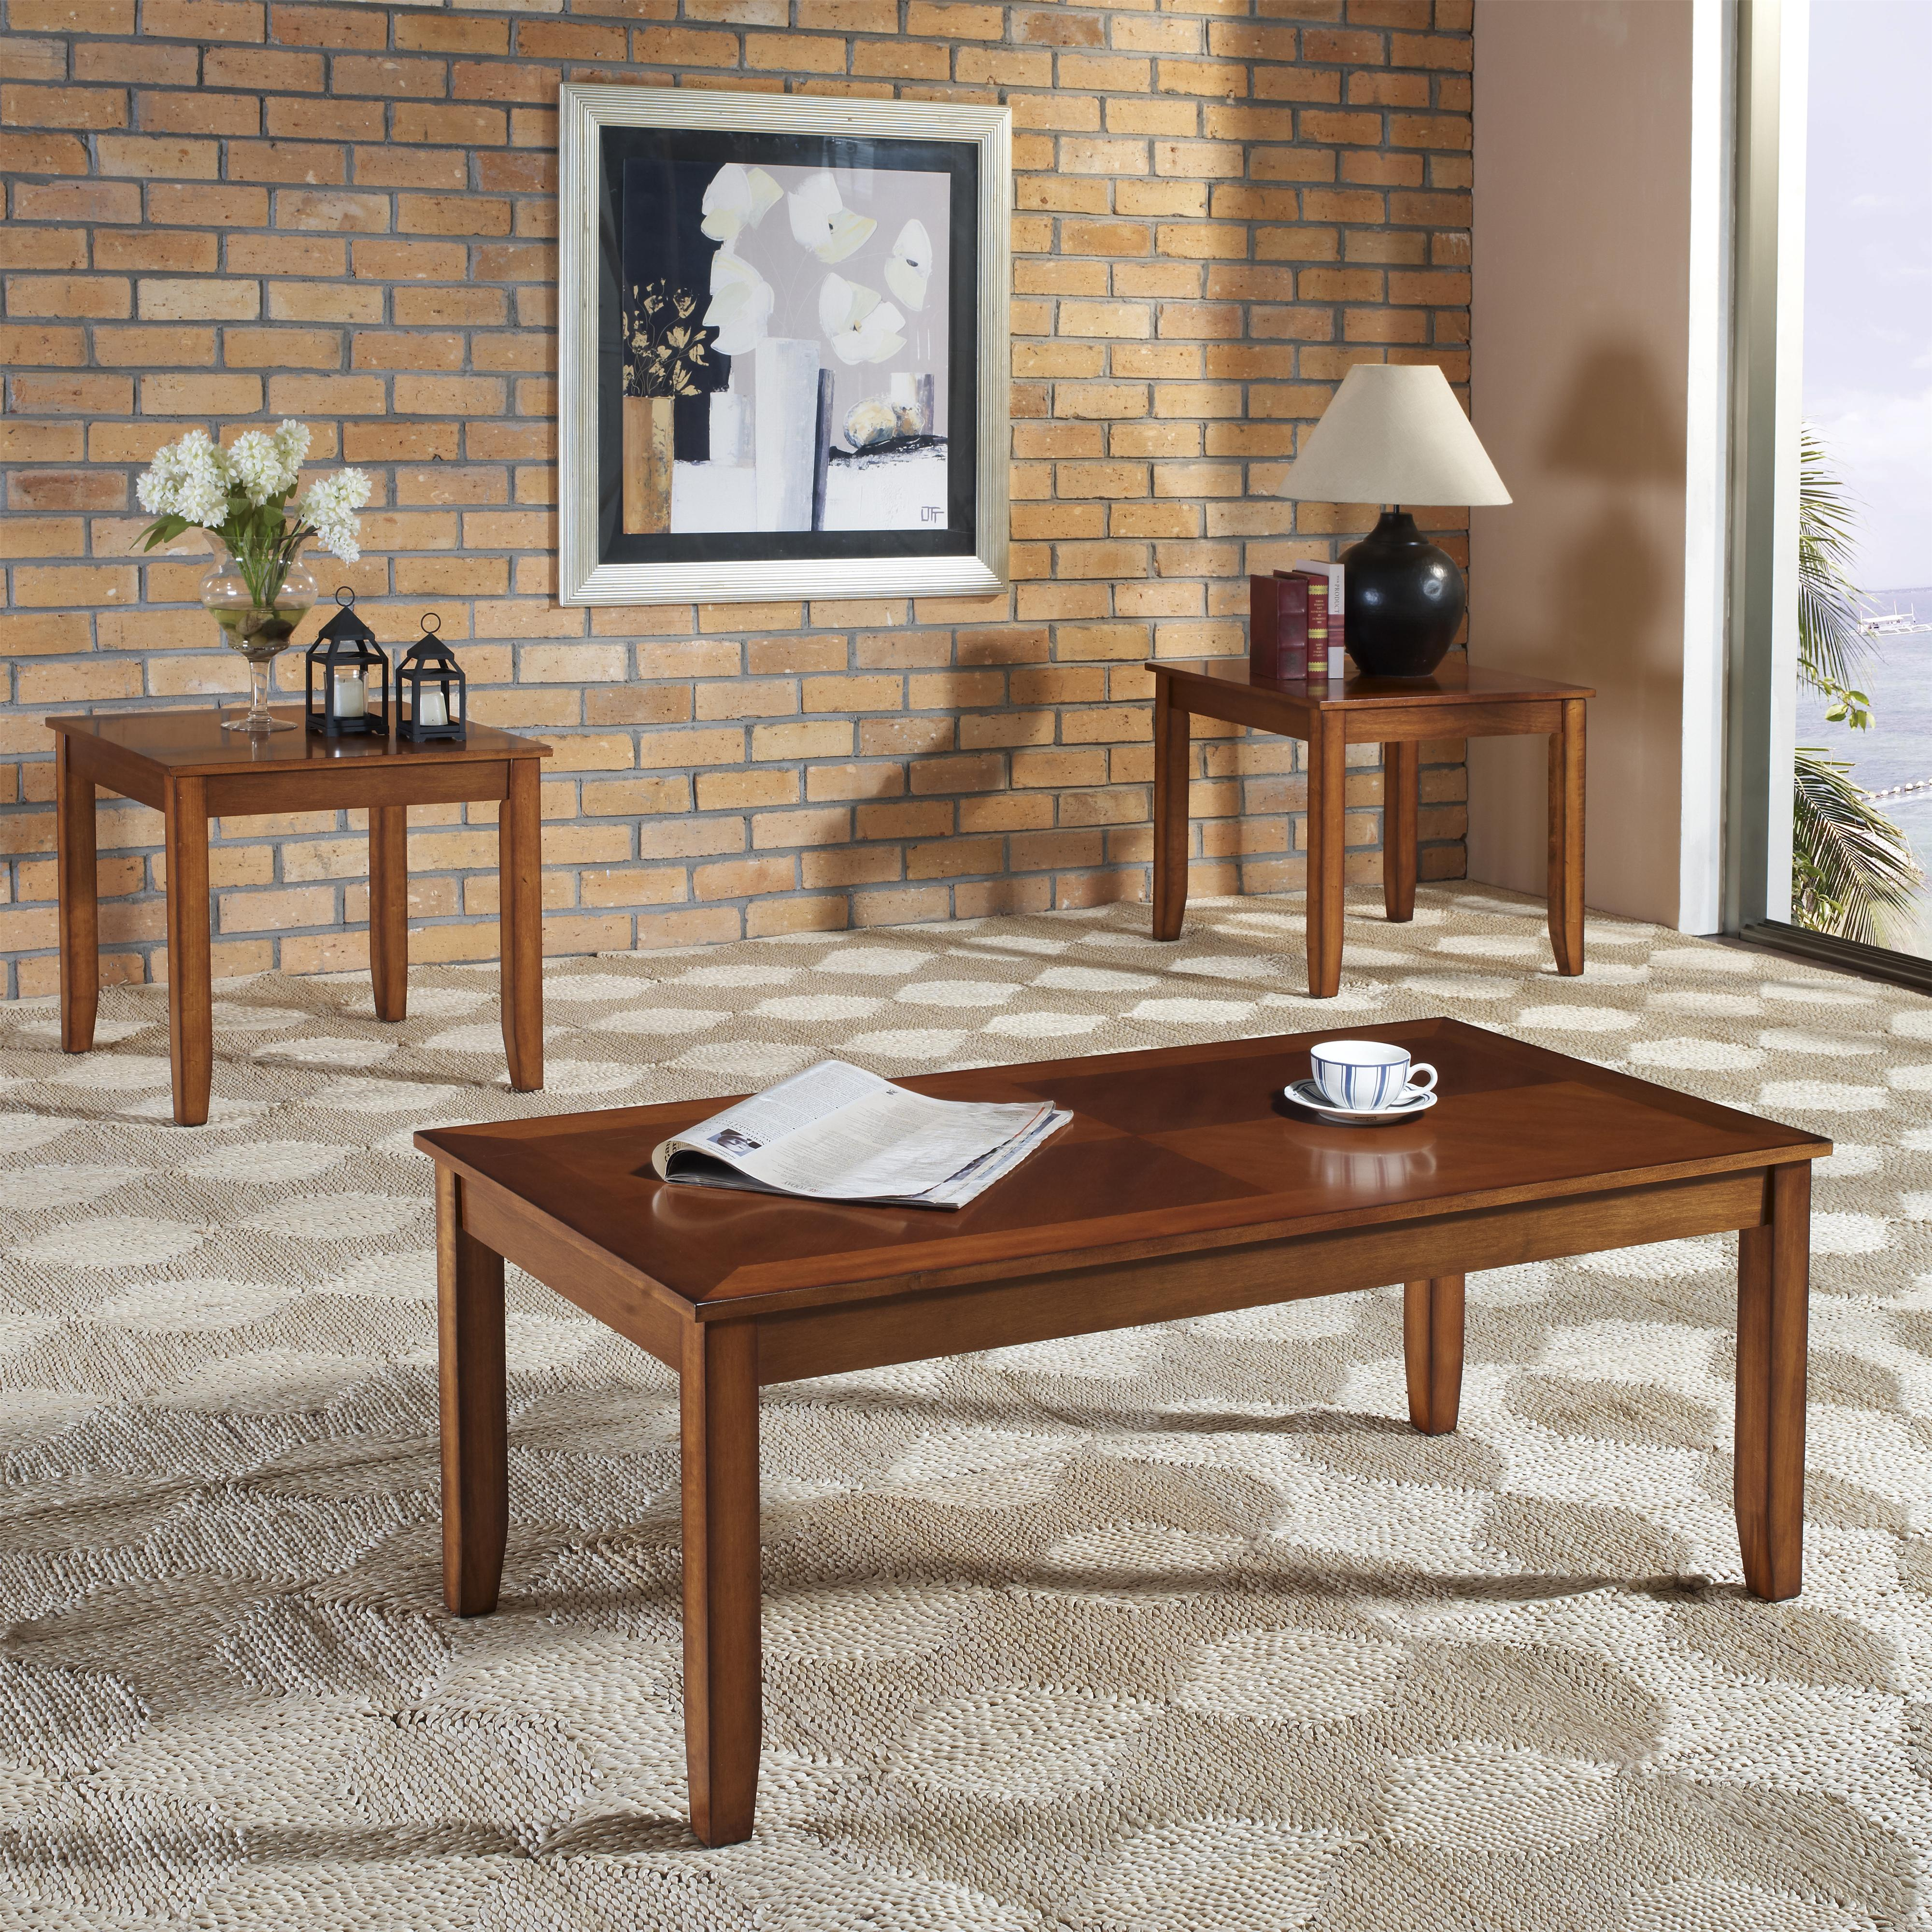 Standard Furniture Brantley 3-Pack Tables - Item Number: 21184